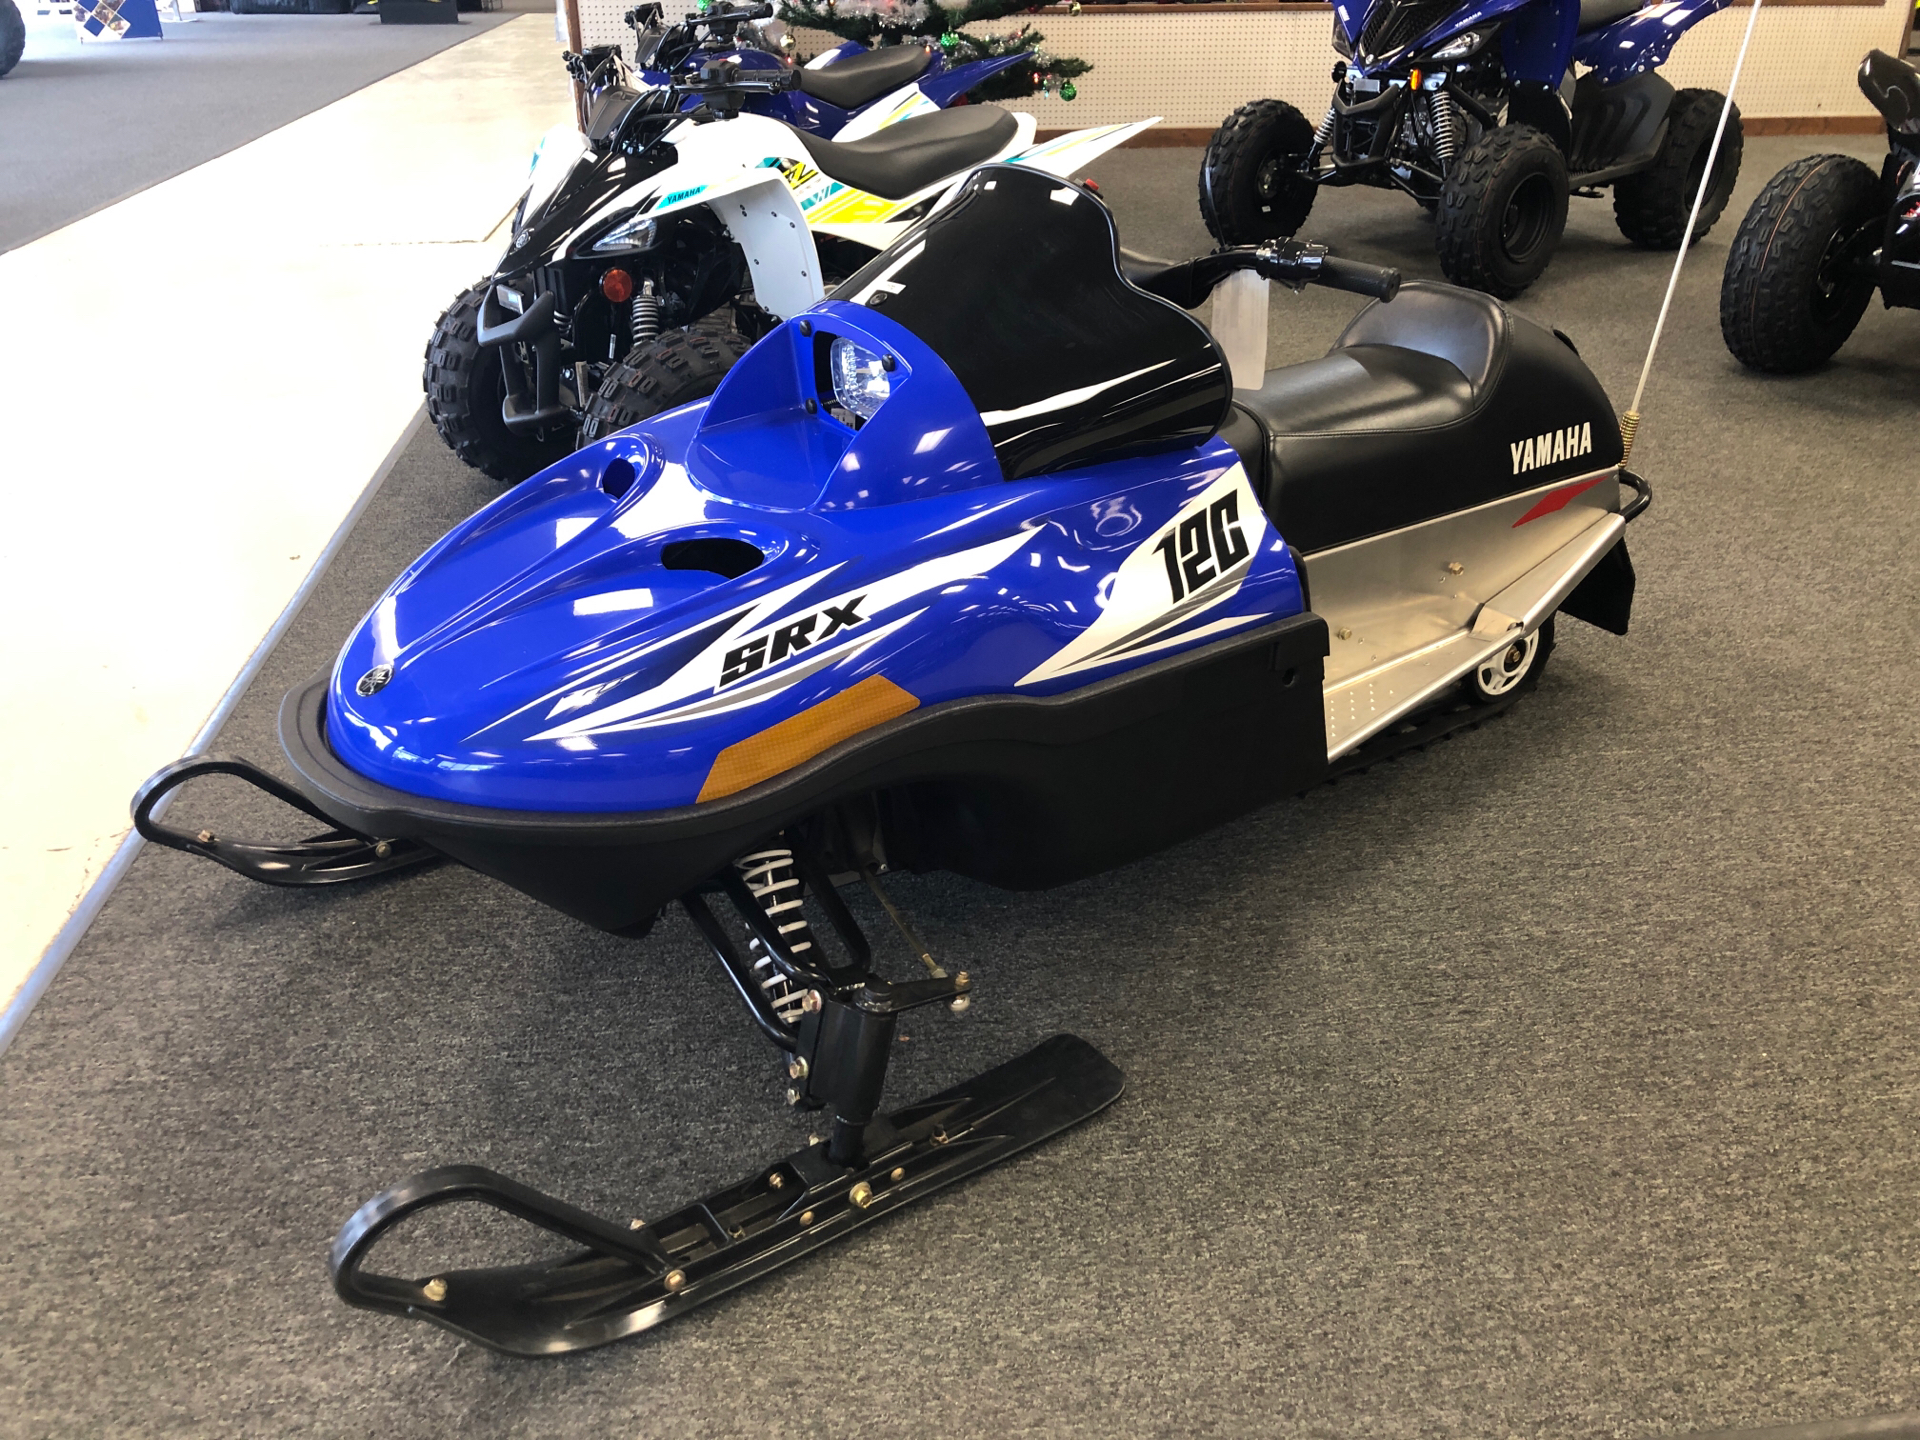 2017 Yamaha SRX 120 in Elkhart, Indiana - Photo 1